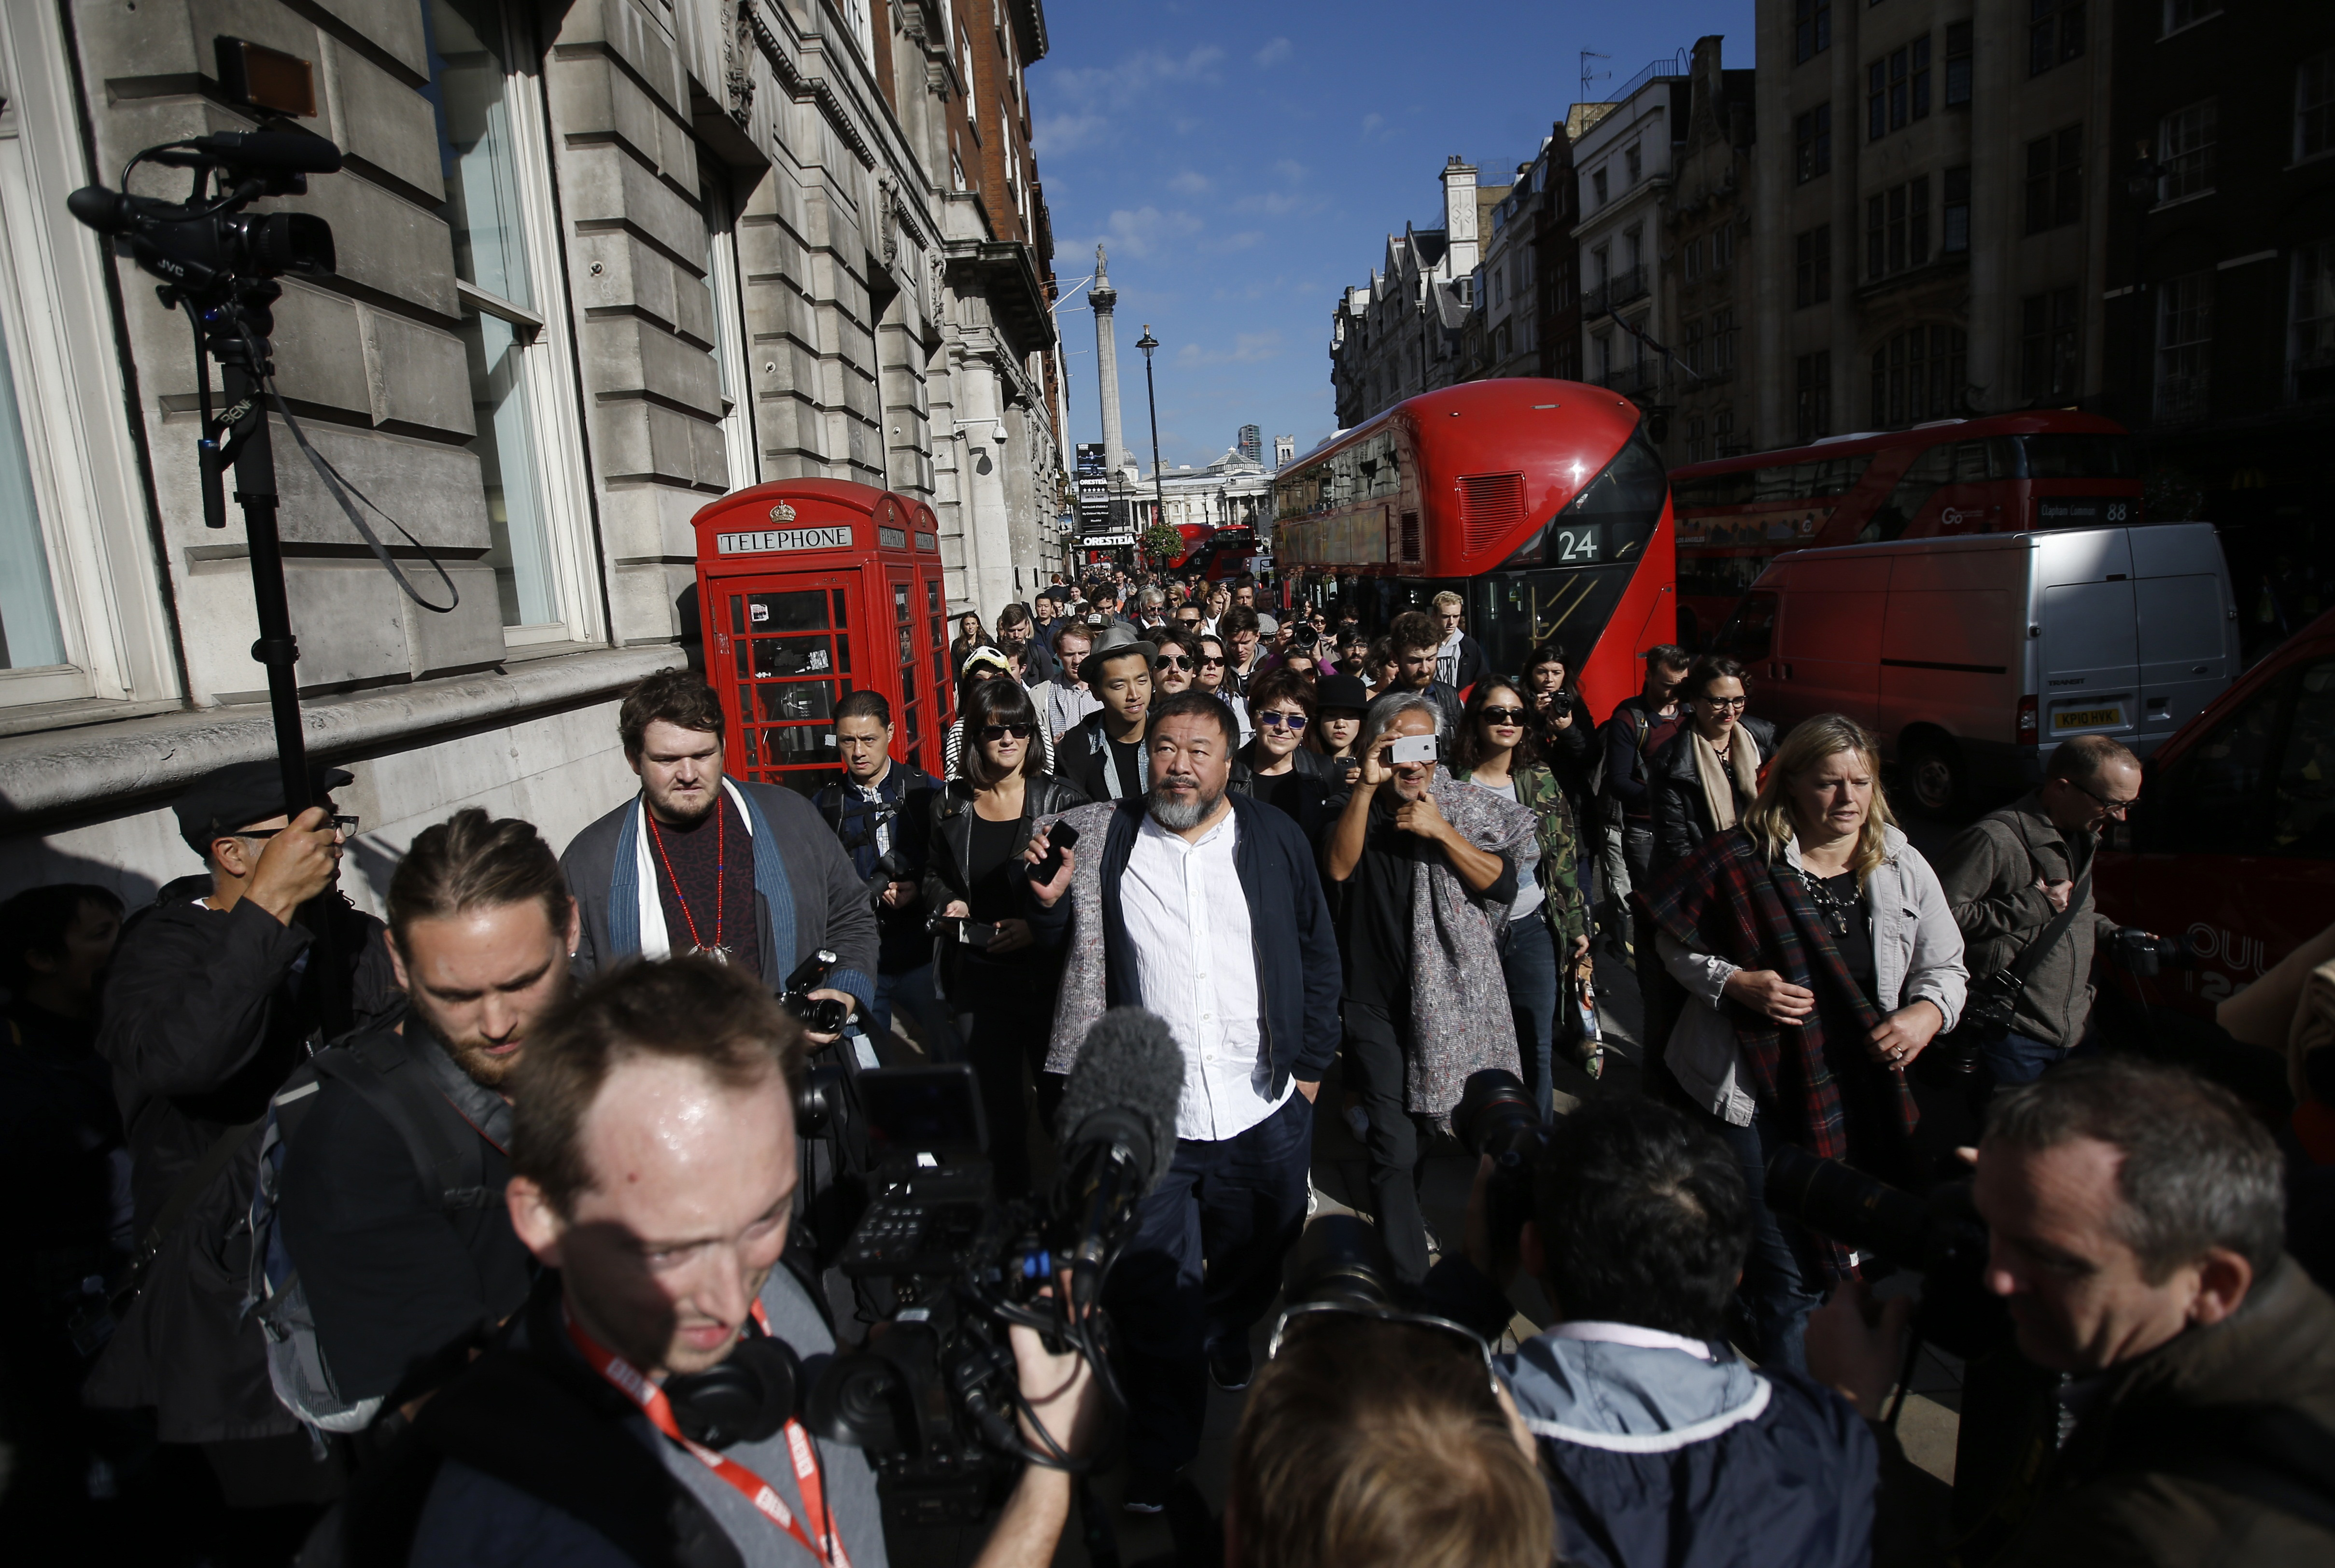 Artists Ai Wei Wei and Anish Kapoor (R) carry blankets to symbolize the plight of refugees,  as they walk through central London, September 17, 2015. REUTERS/Peter Nicholls - RTS1K7G